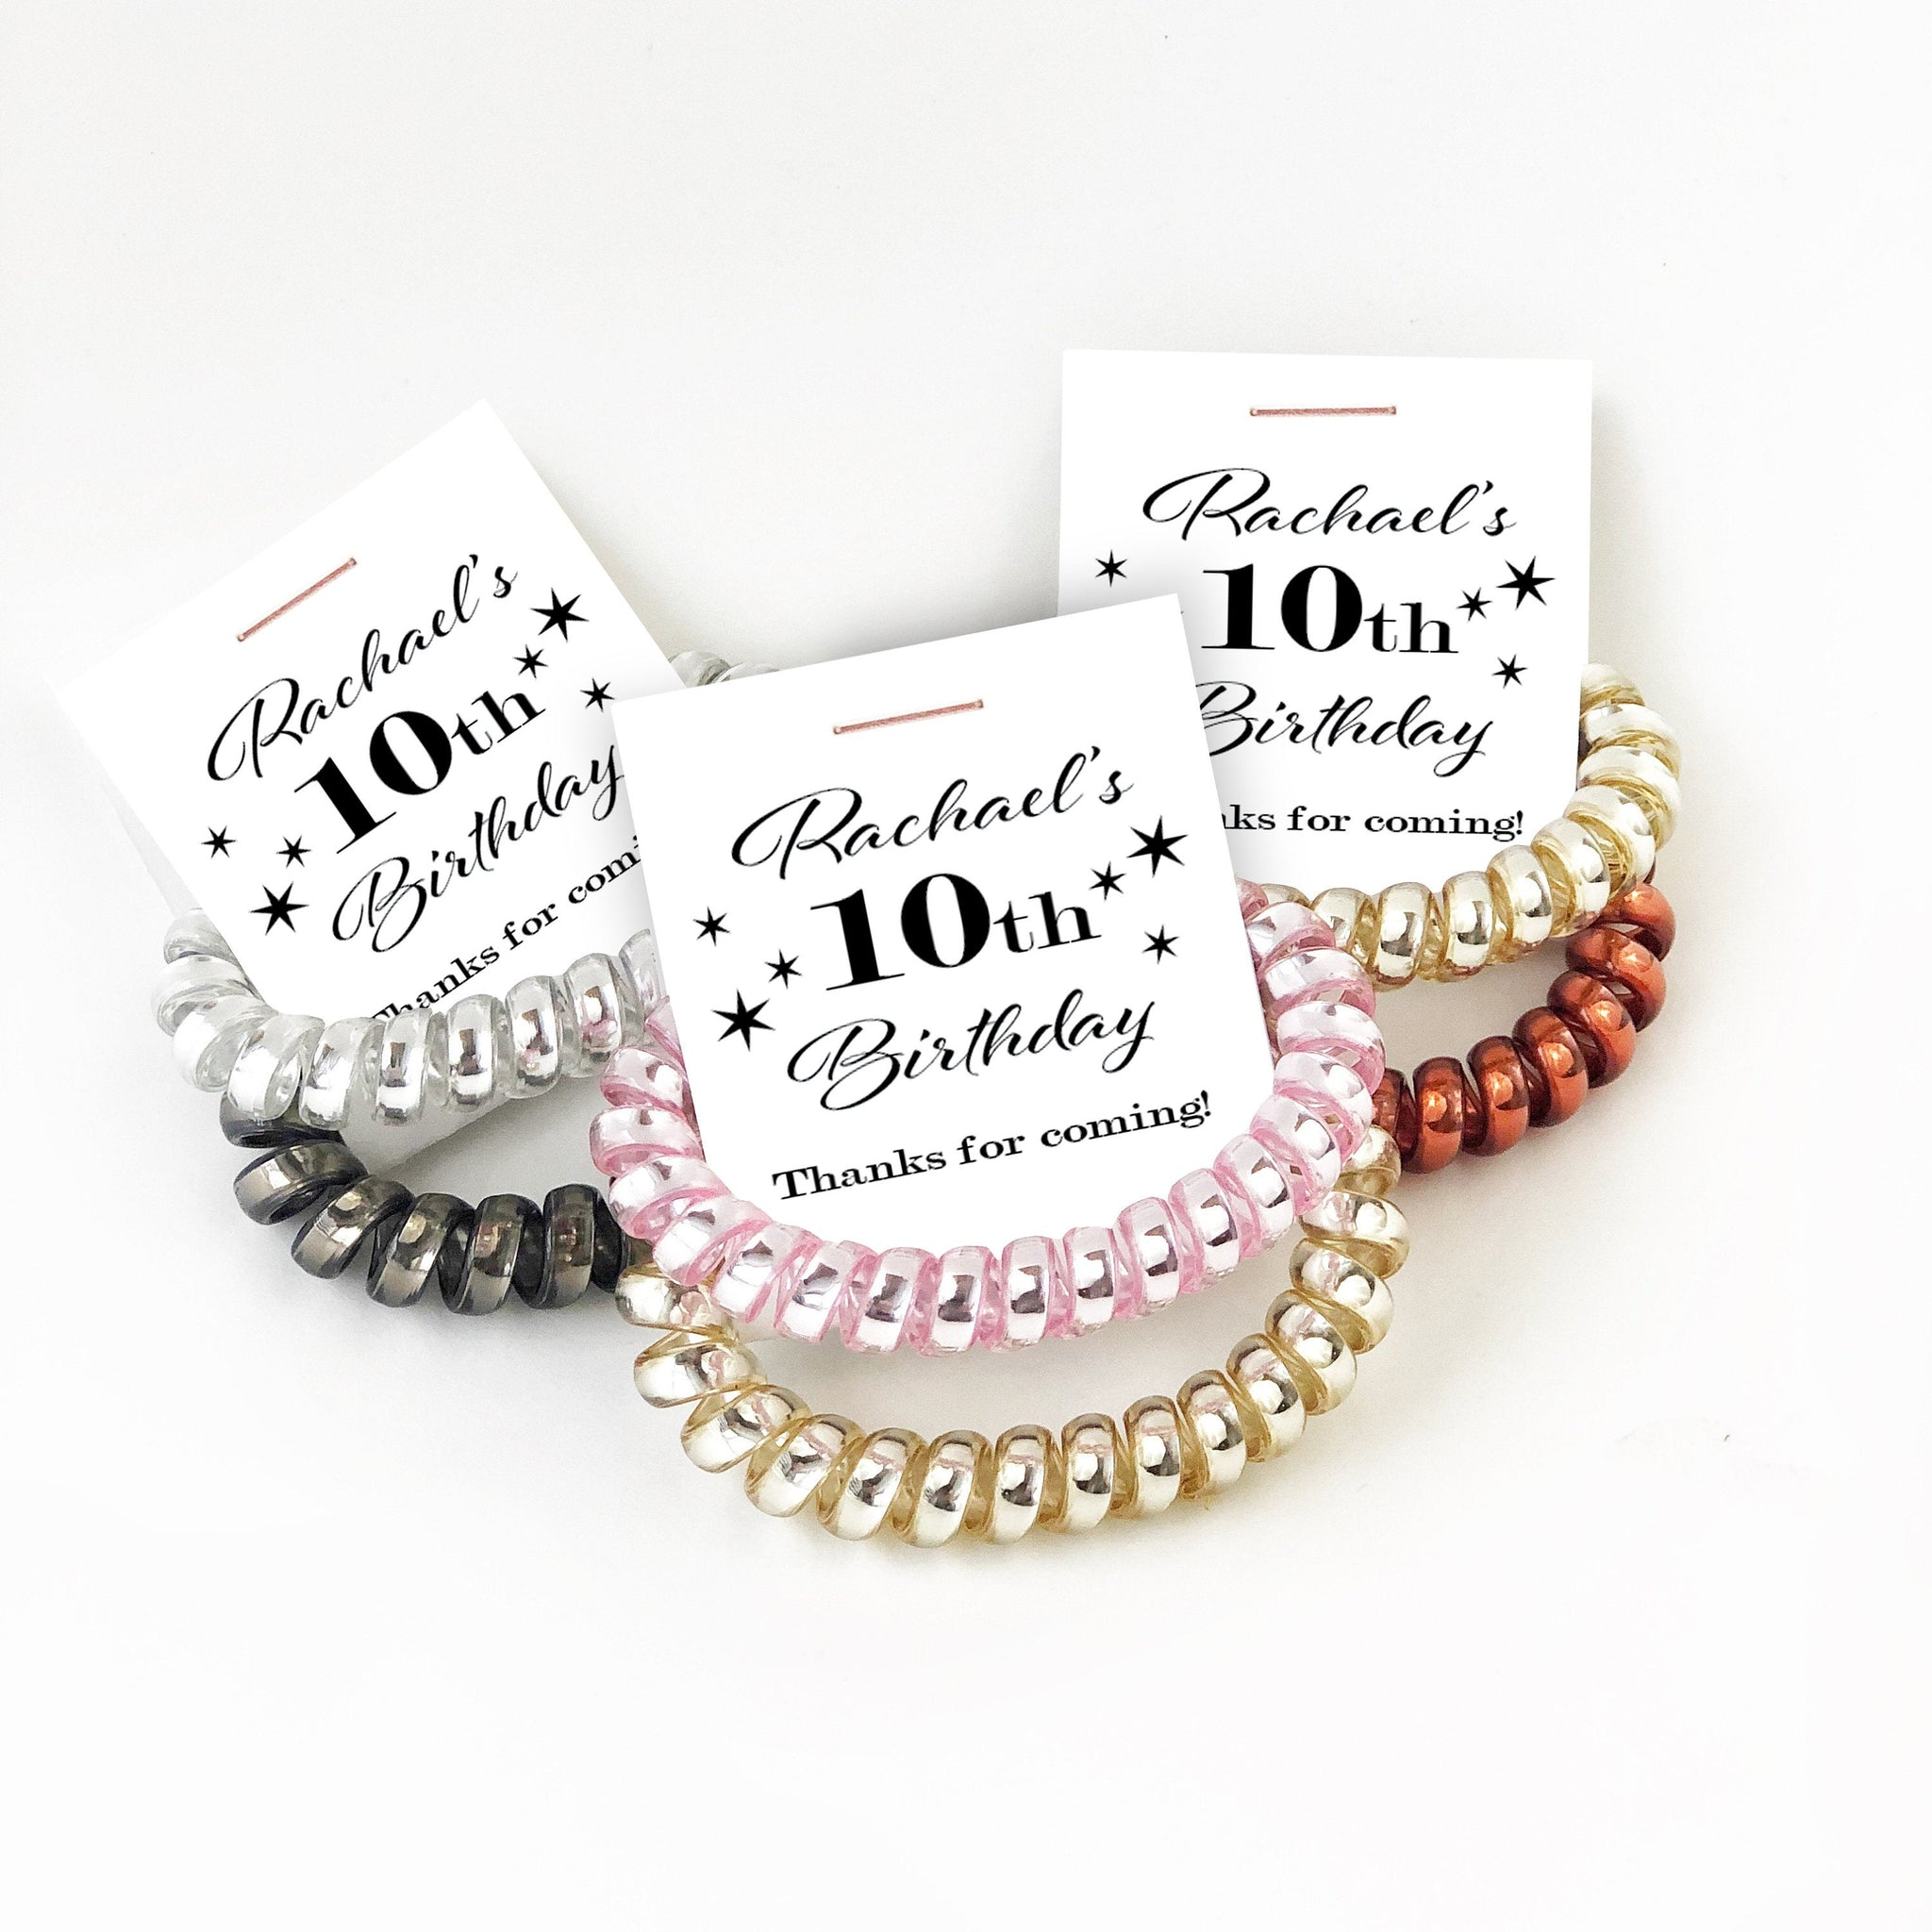 10th Birthday Party Favors, Spiral Hair Ties - @PlumPolkaDot